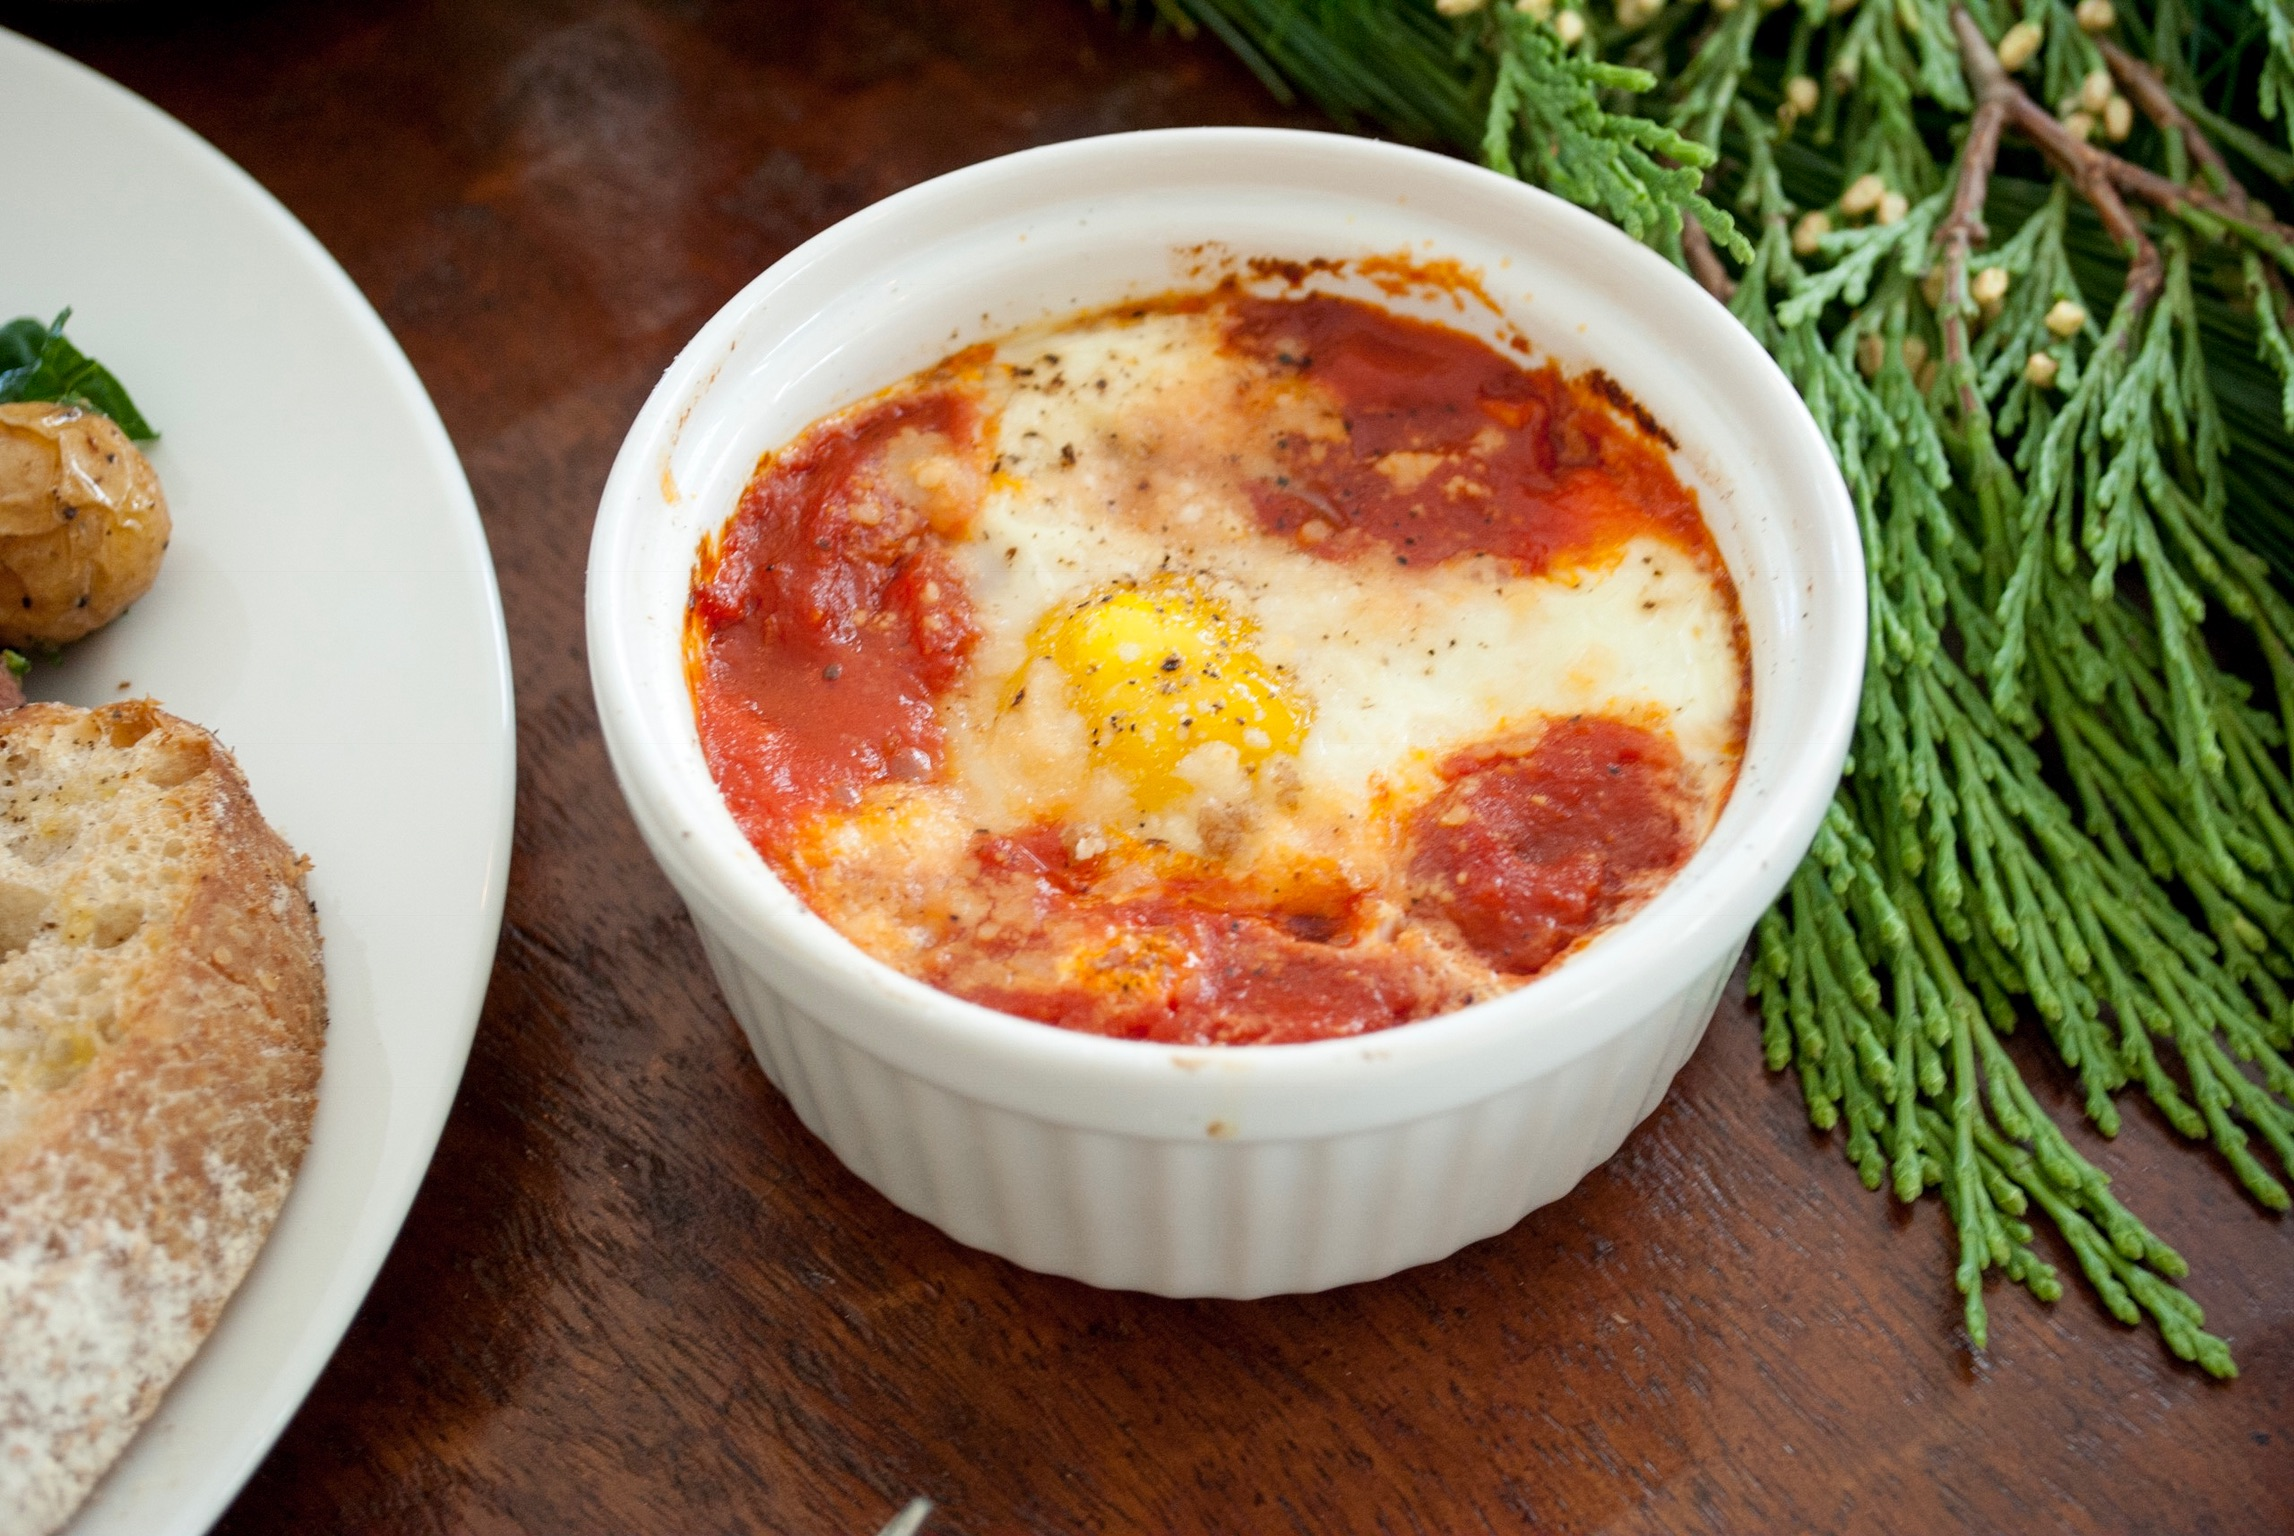 Gettin' saucy with some Eggs in Purgatory